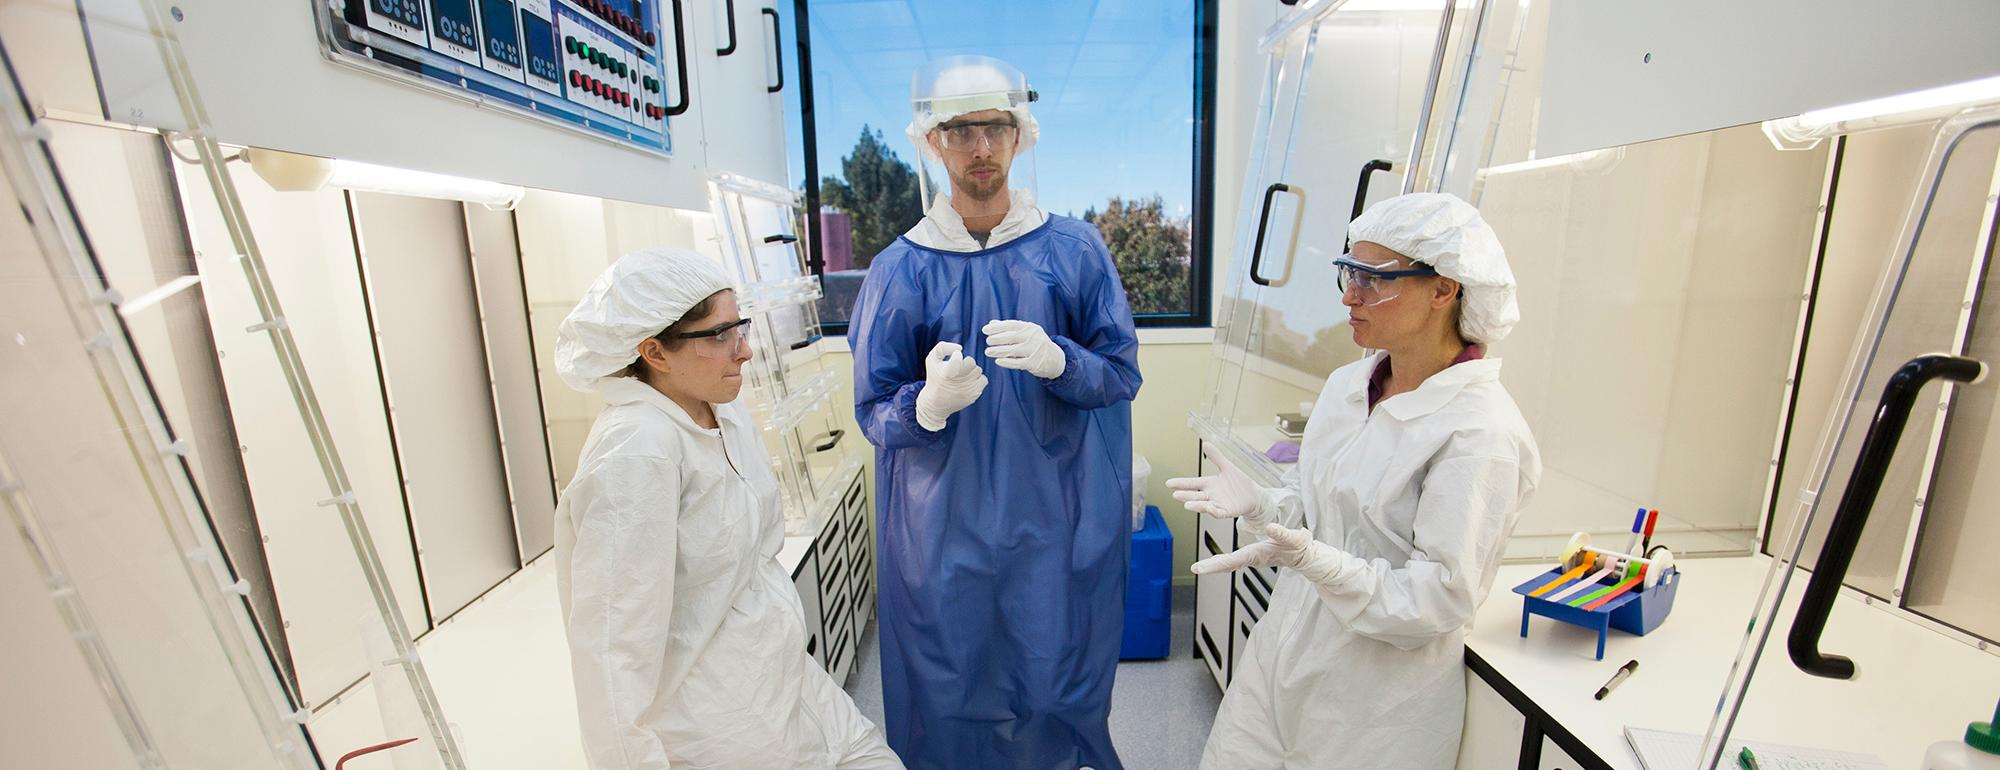 Researchers standing inside the clean lab.